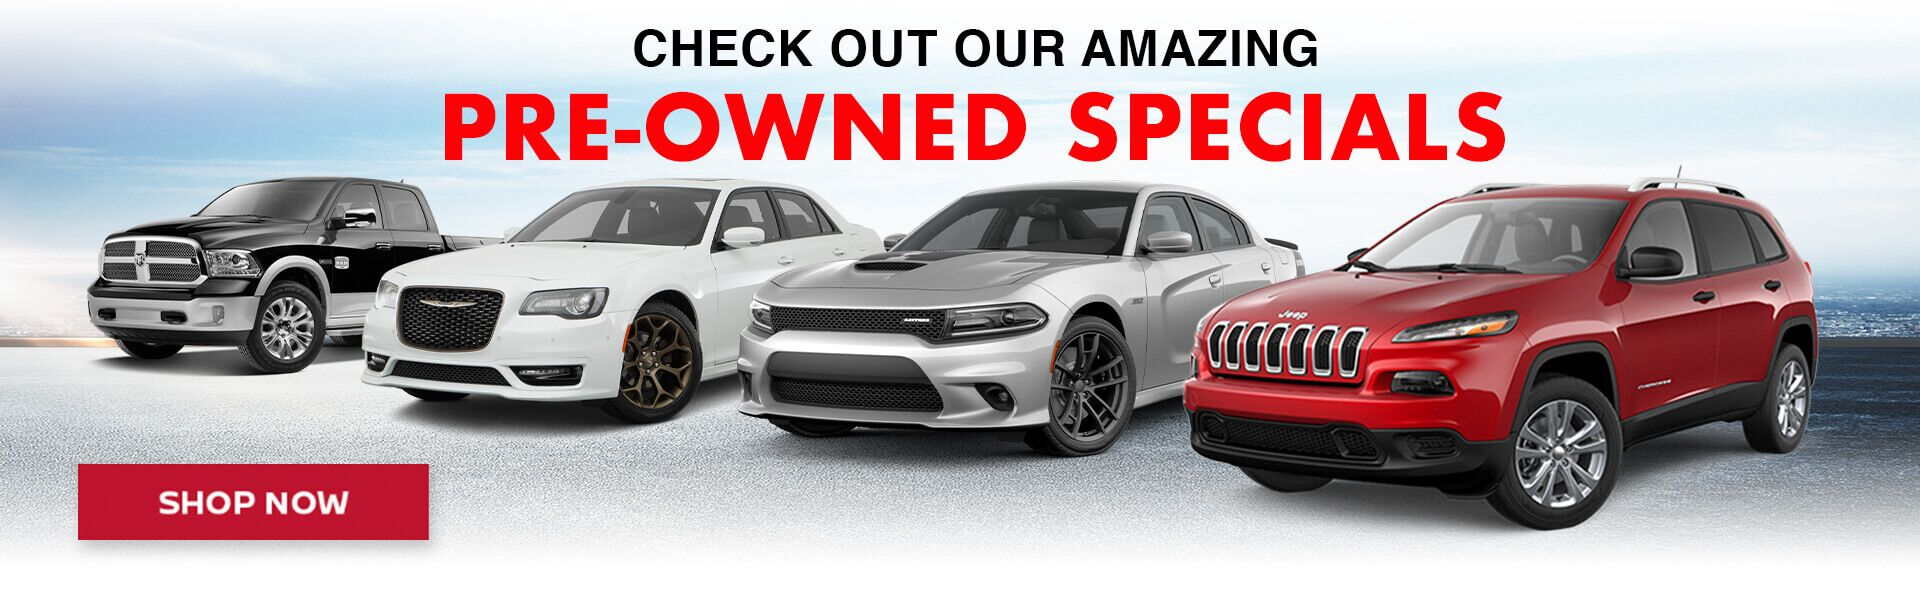 Check out our amazing pre-owned specials